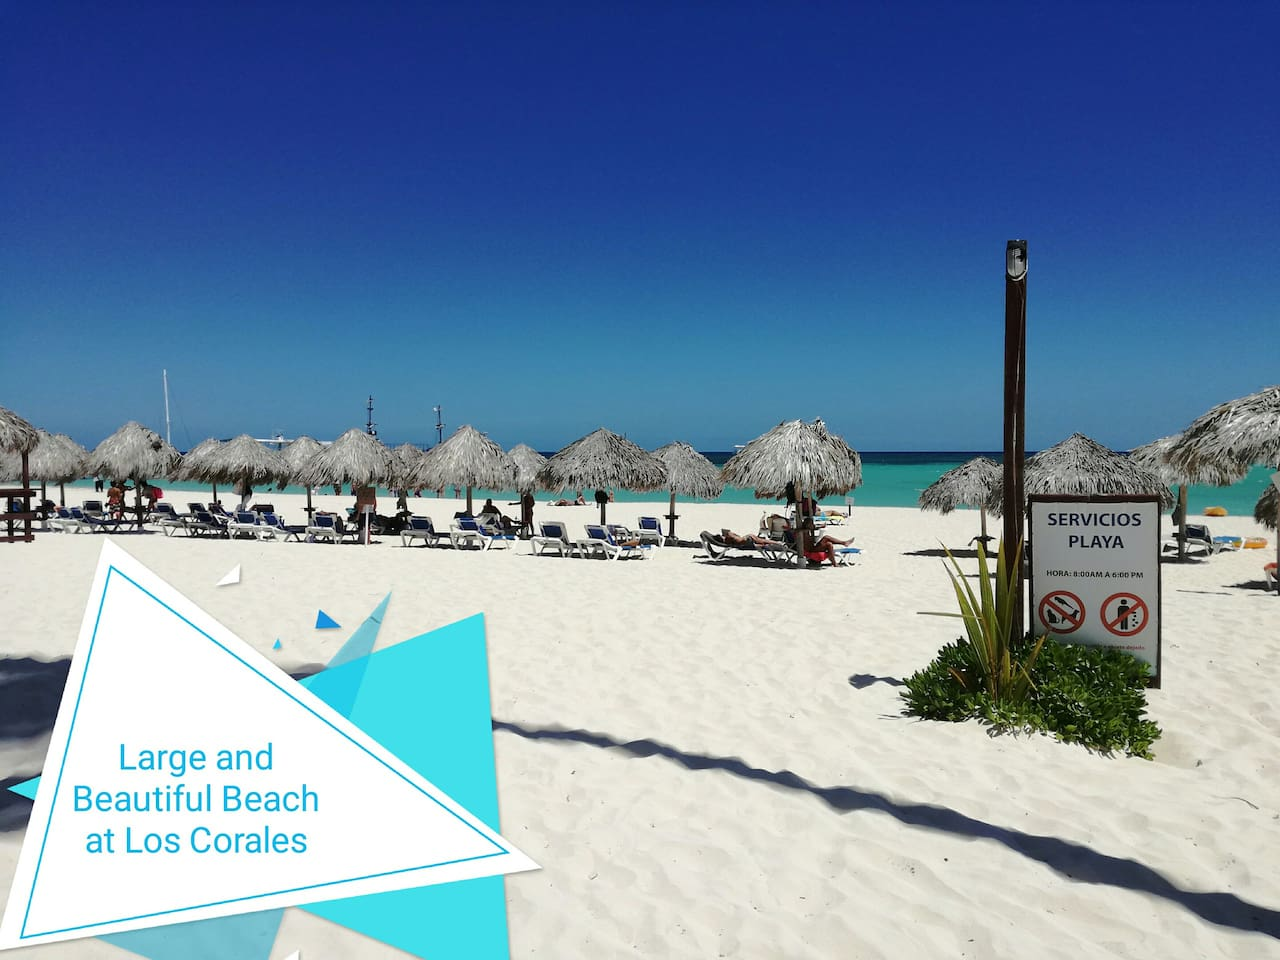 Our Private Beach includes Umbrellas and Beach Chairs